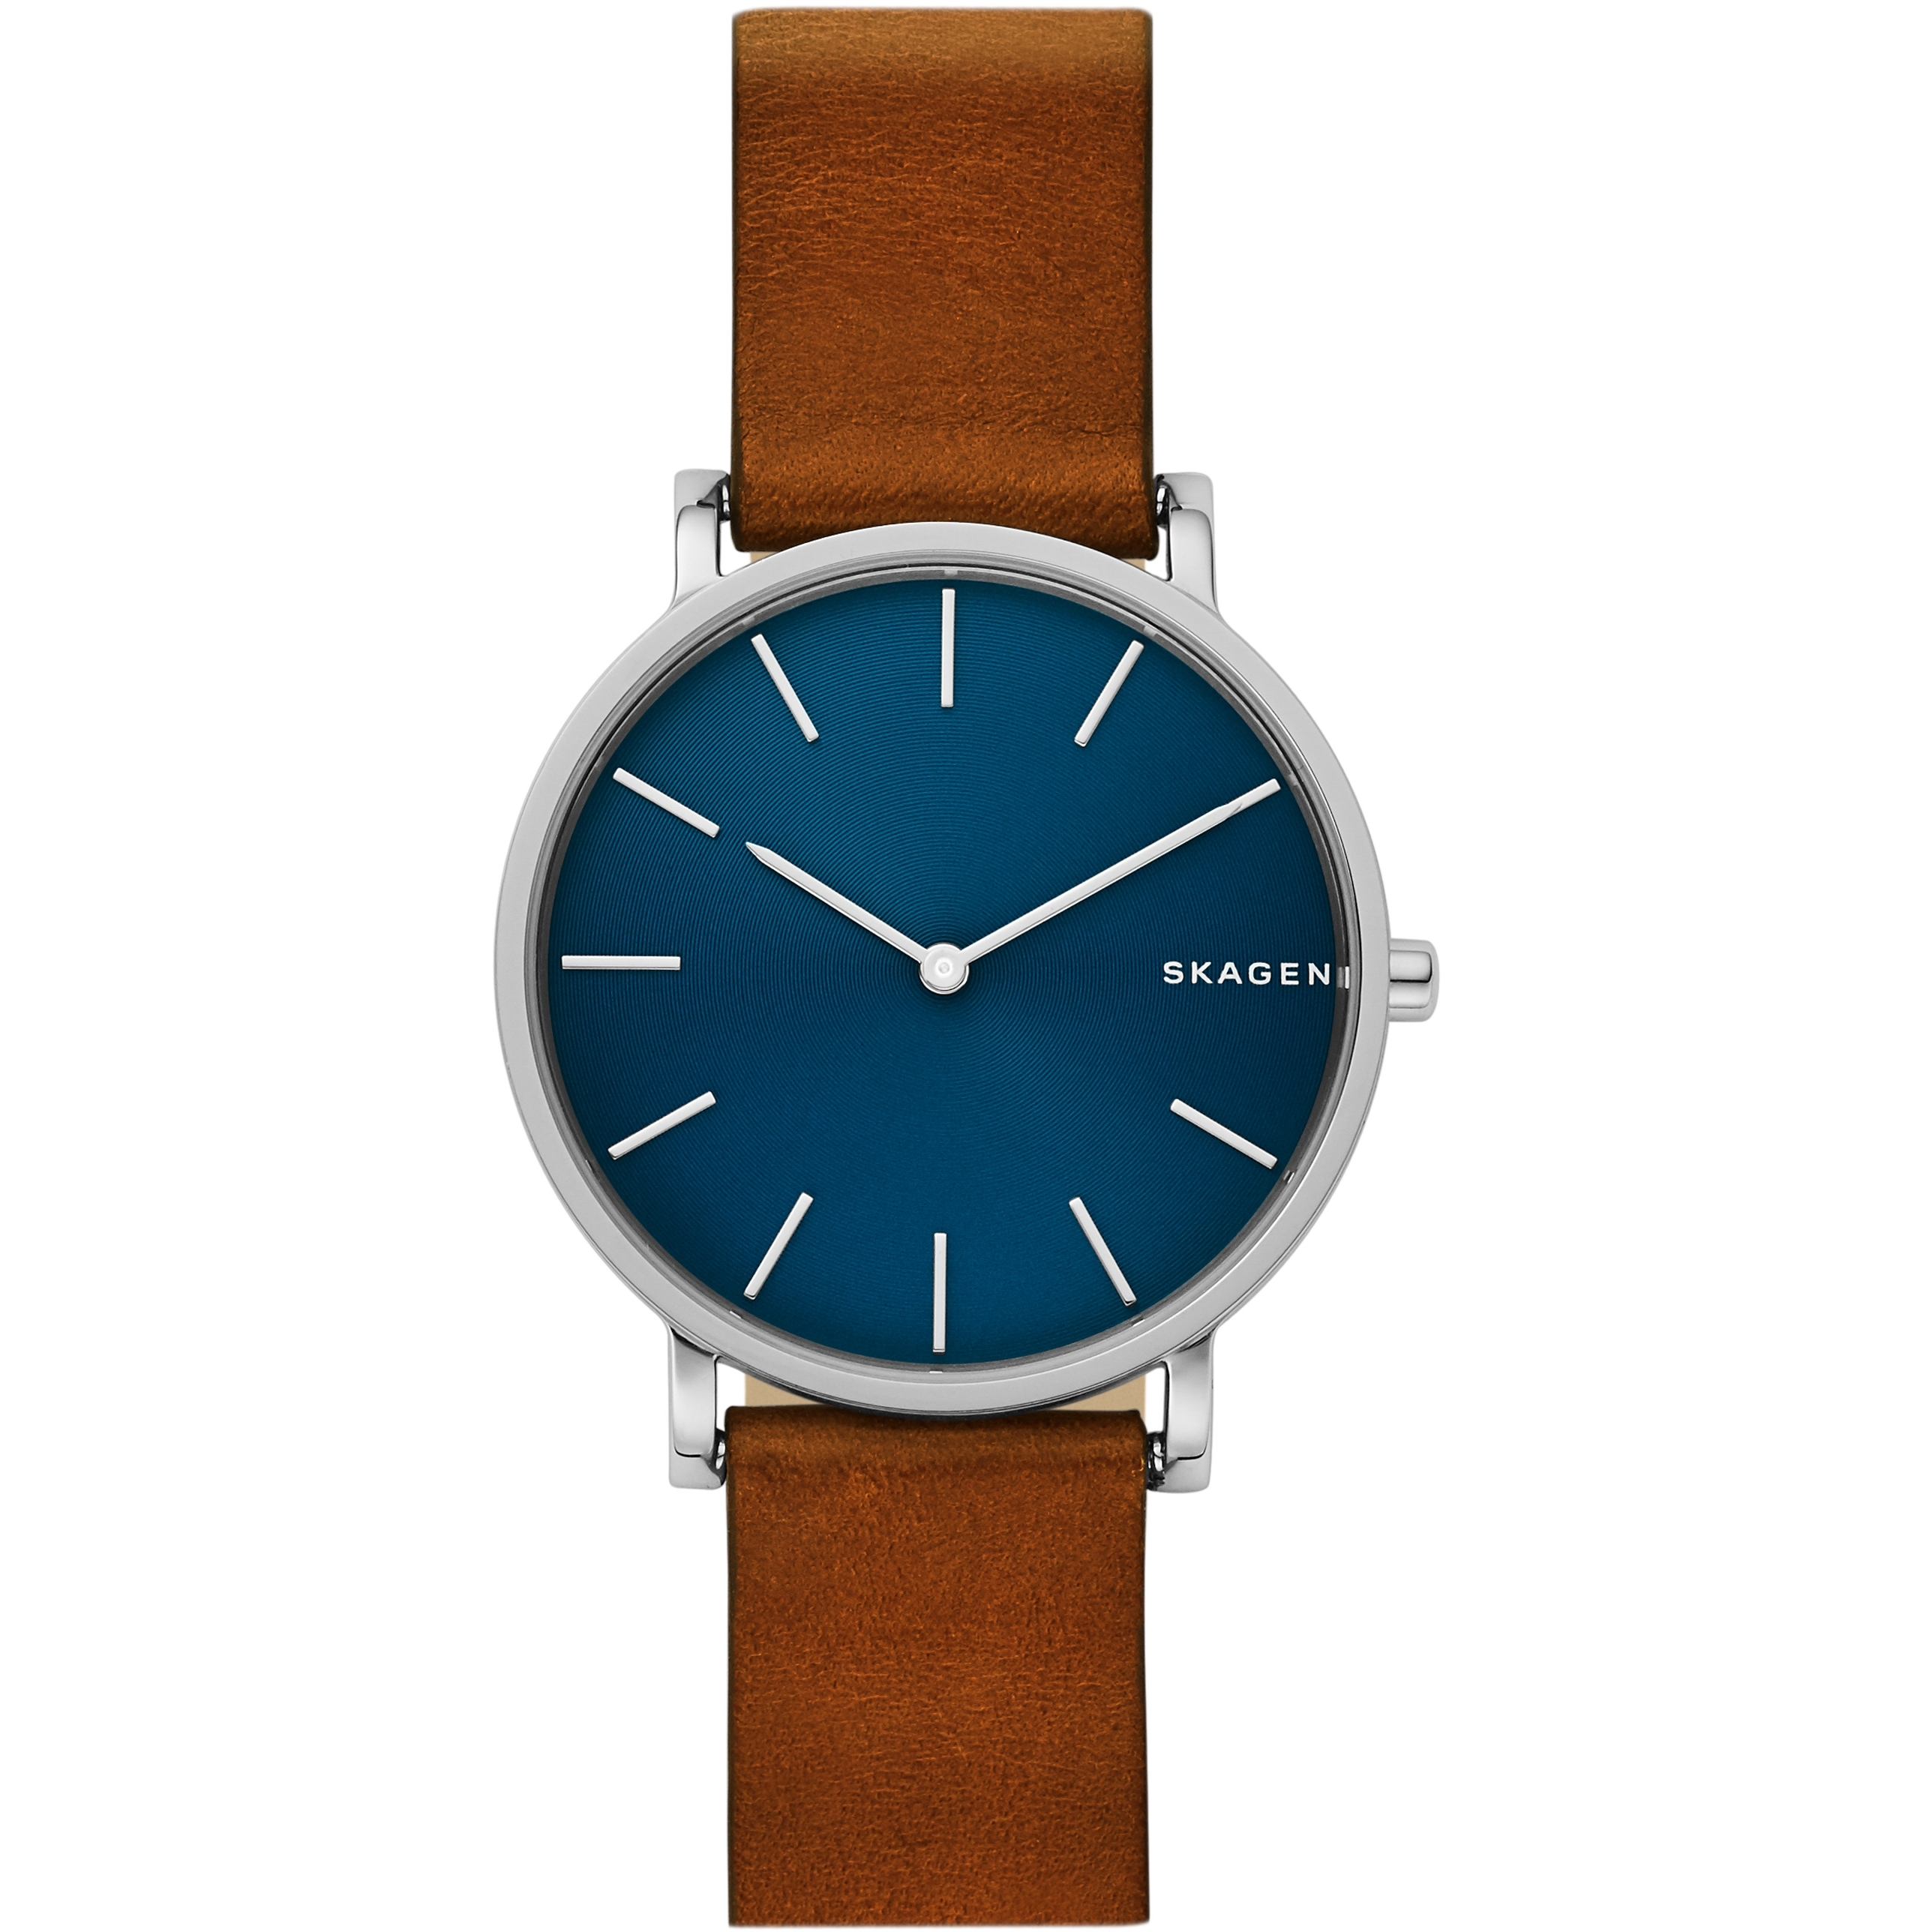 watch by s hagen skagen watches pin men stainless steel